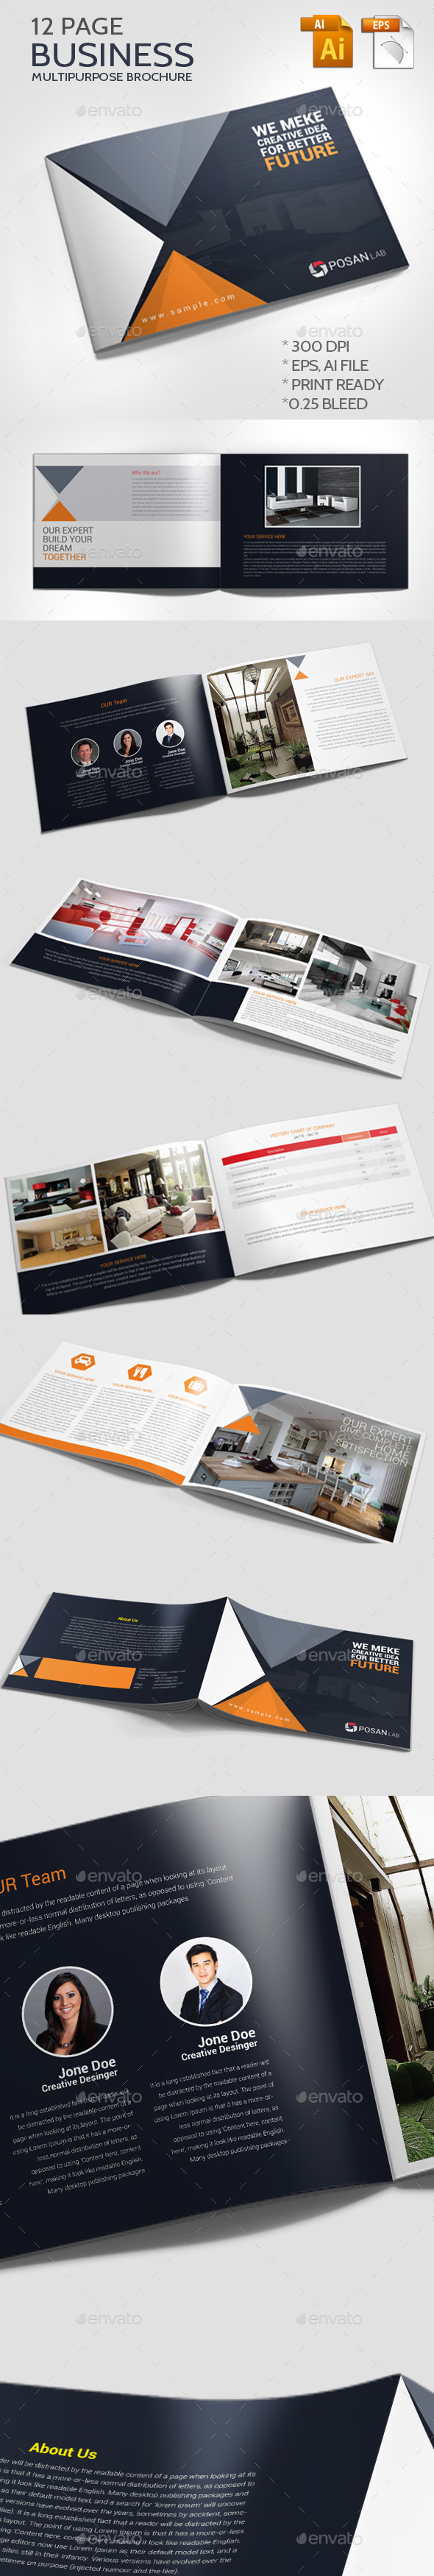 GraphicRiver Business Multipurpose Brochure 11426397